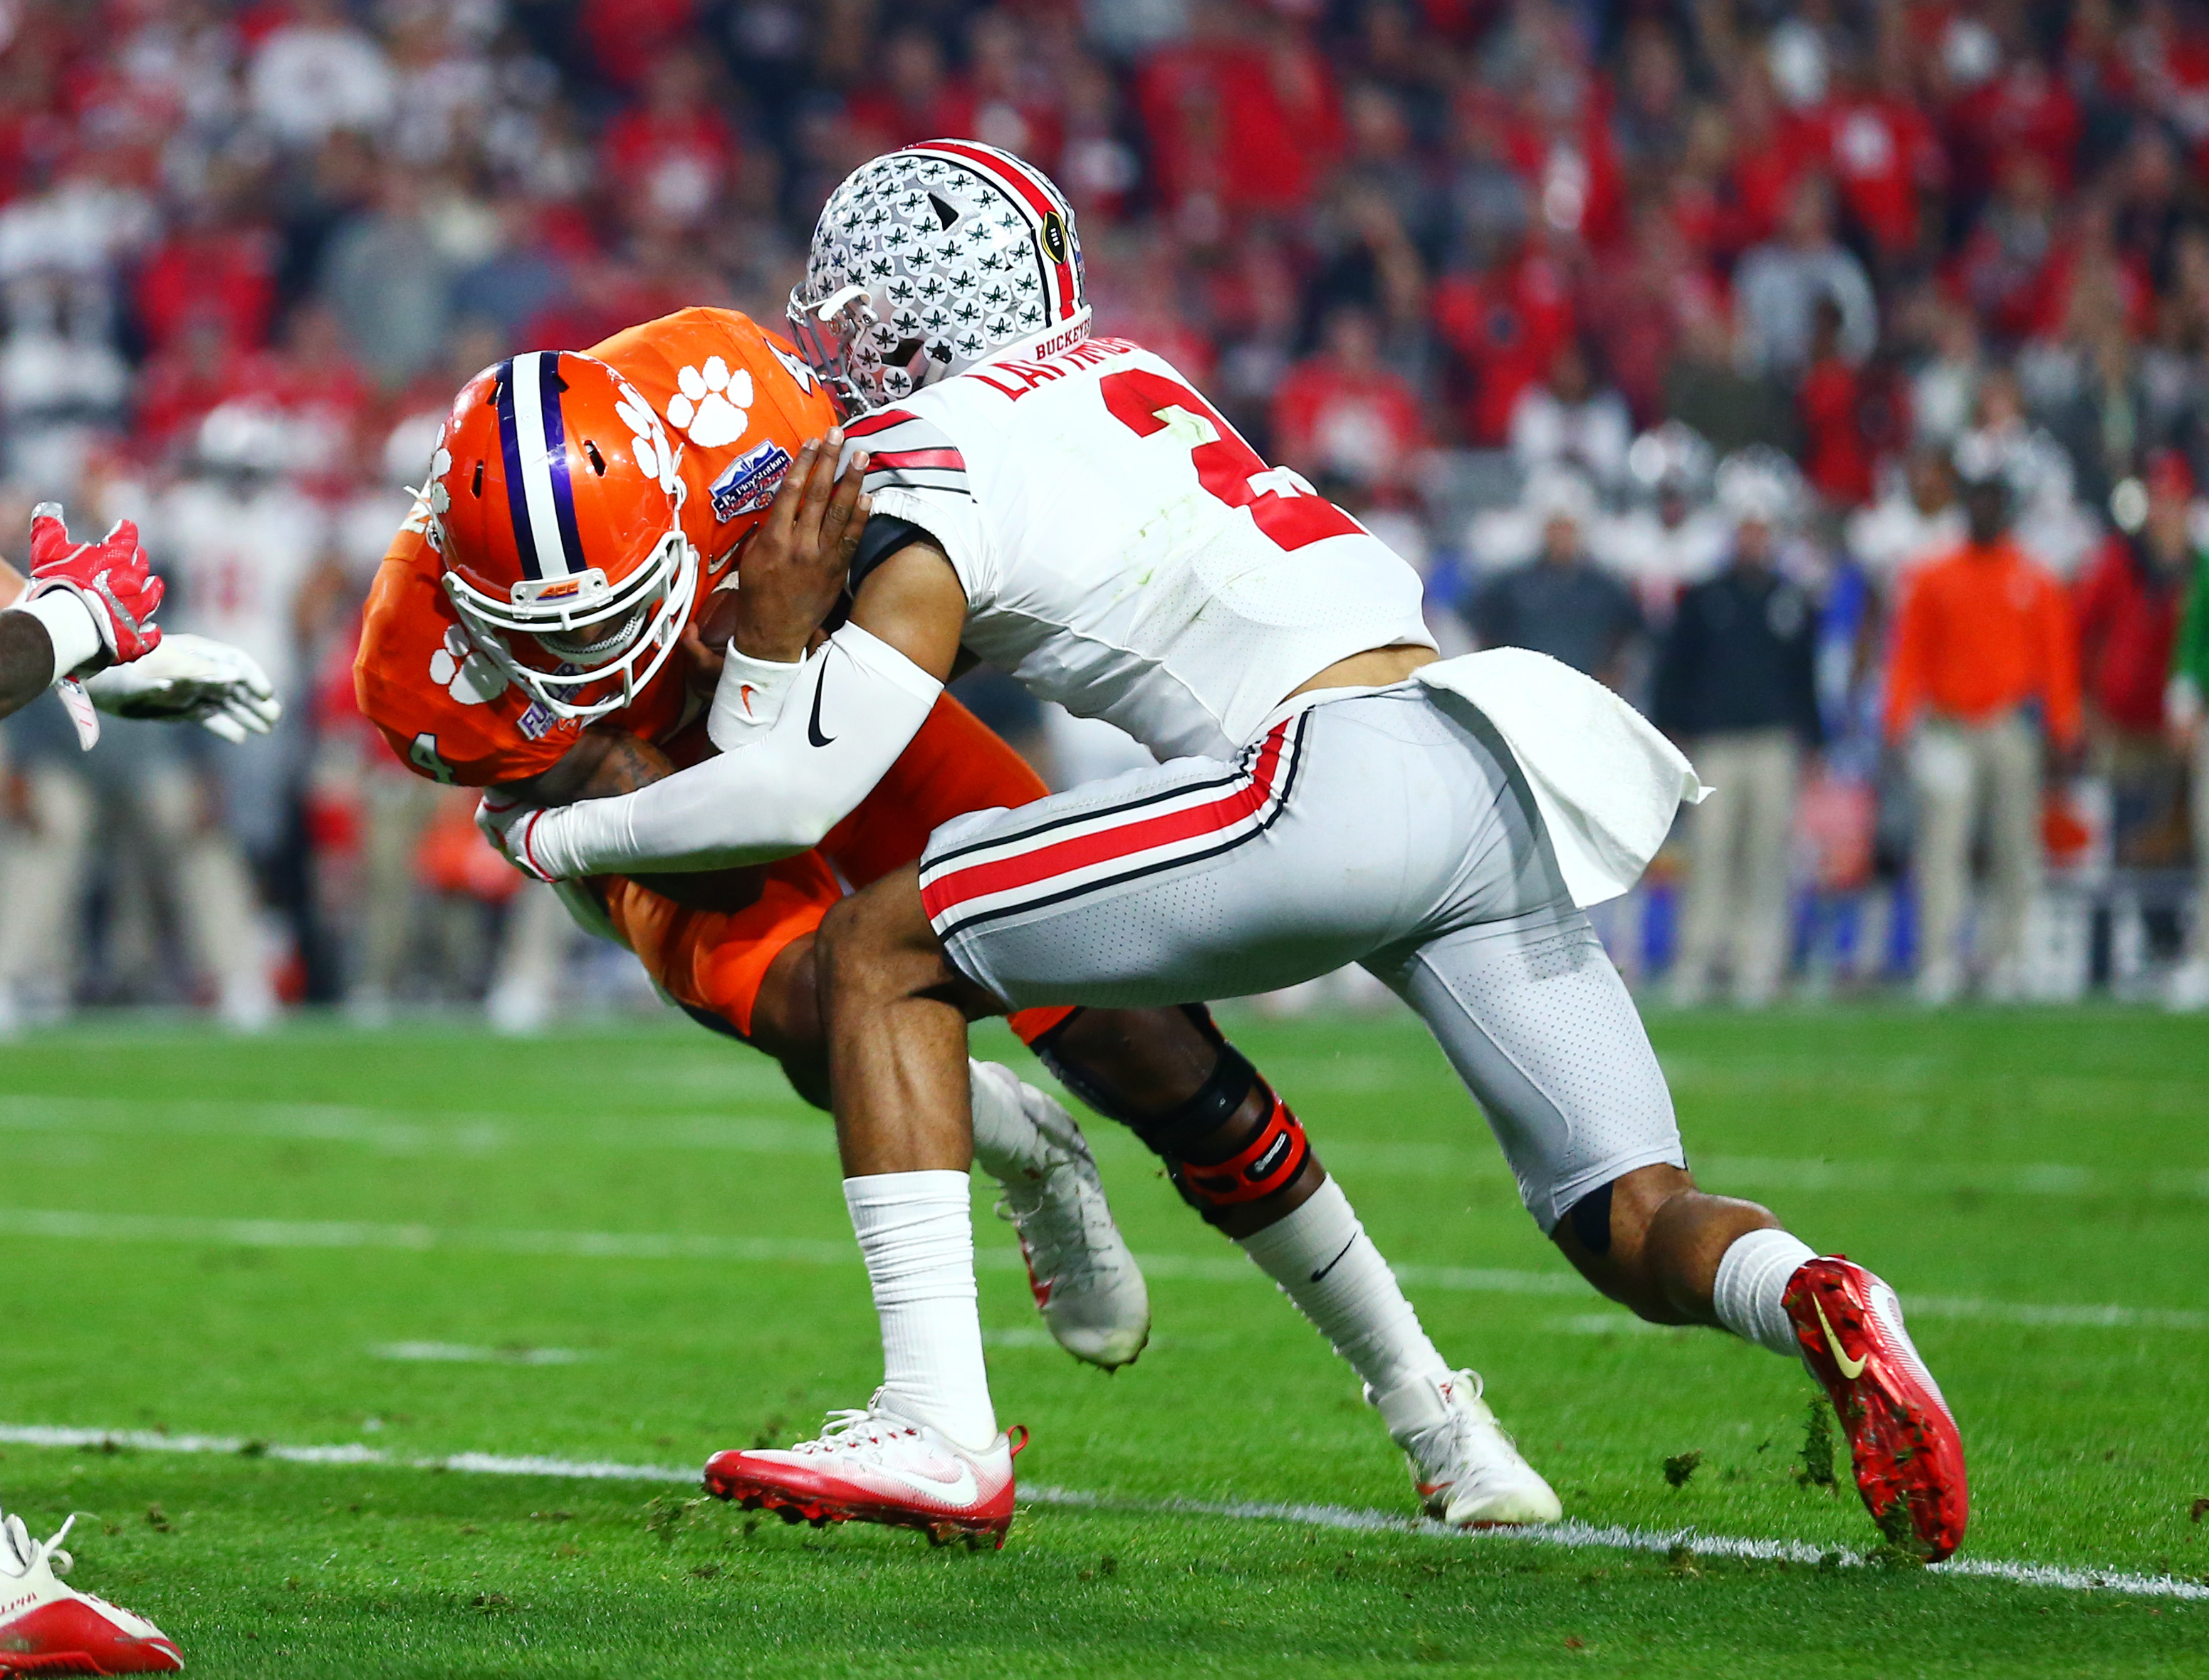 9808523-ncaa-football-fiesta-bowl-ohio-state-vs-clemson-3